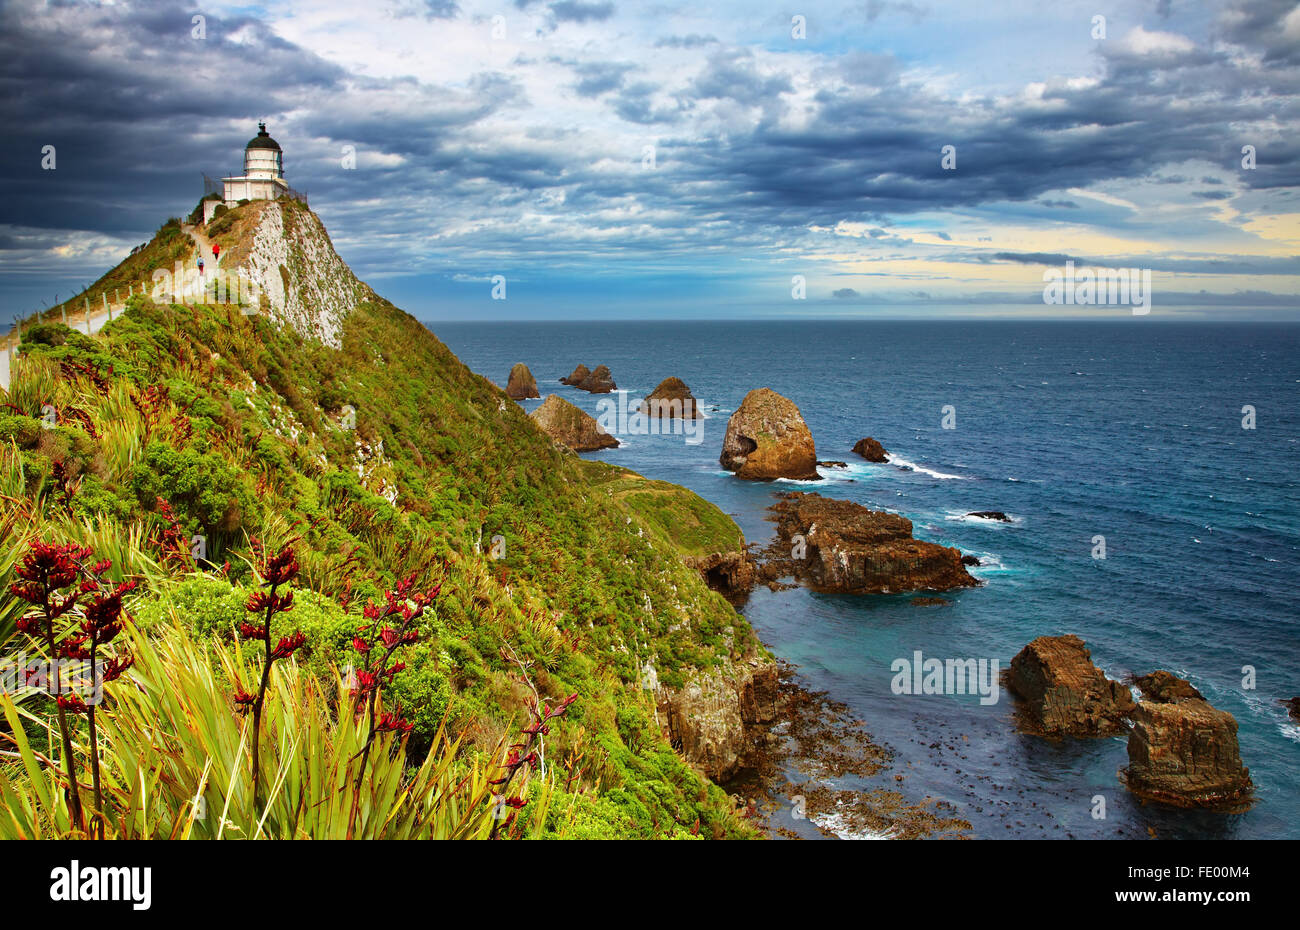 Nugget Point Lighthouse, Nouvelle-Zélande Photo Stock